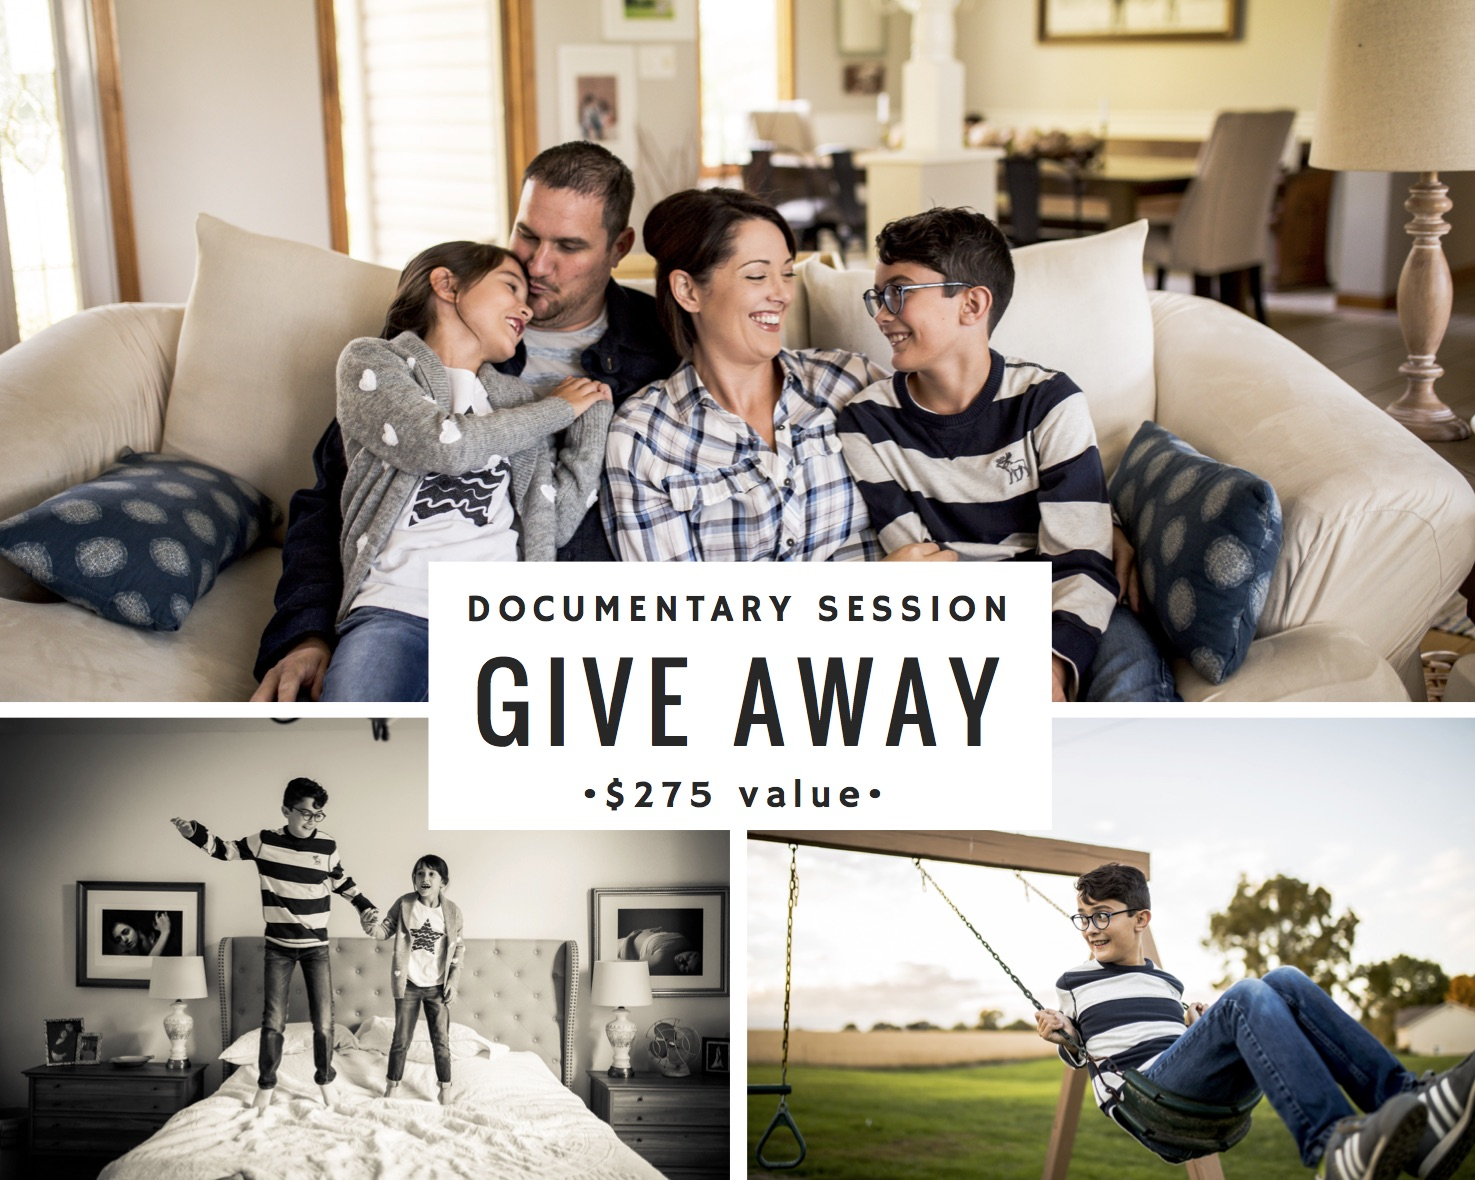 Documentary Session Giveaway.jpg